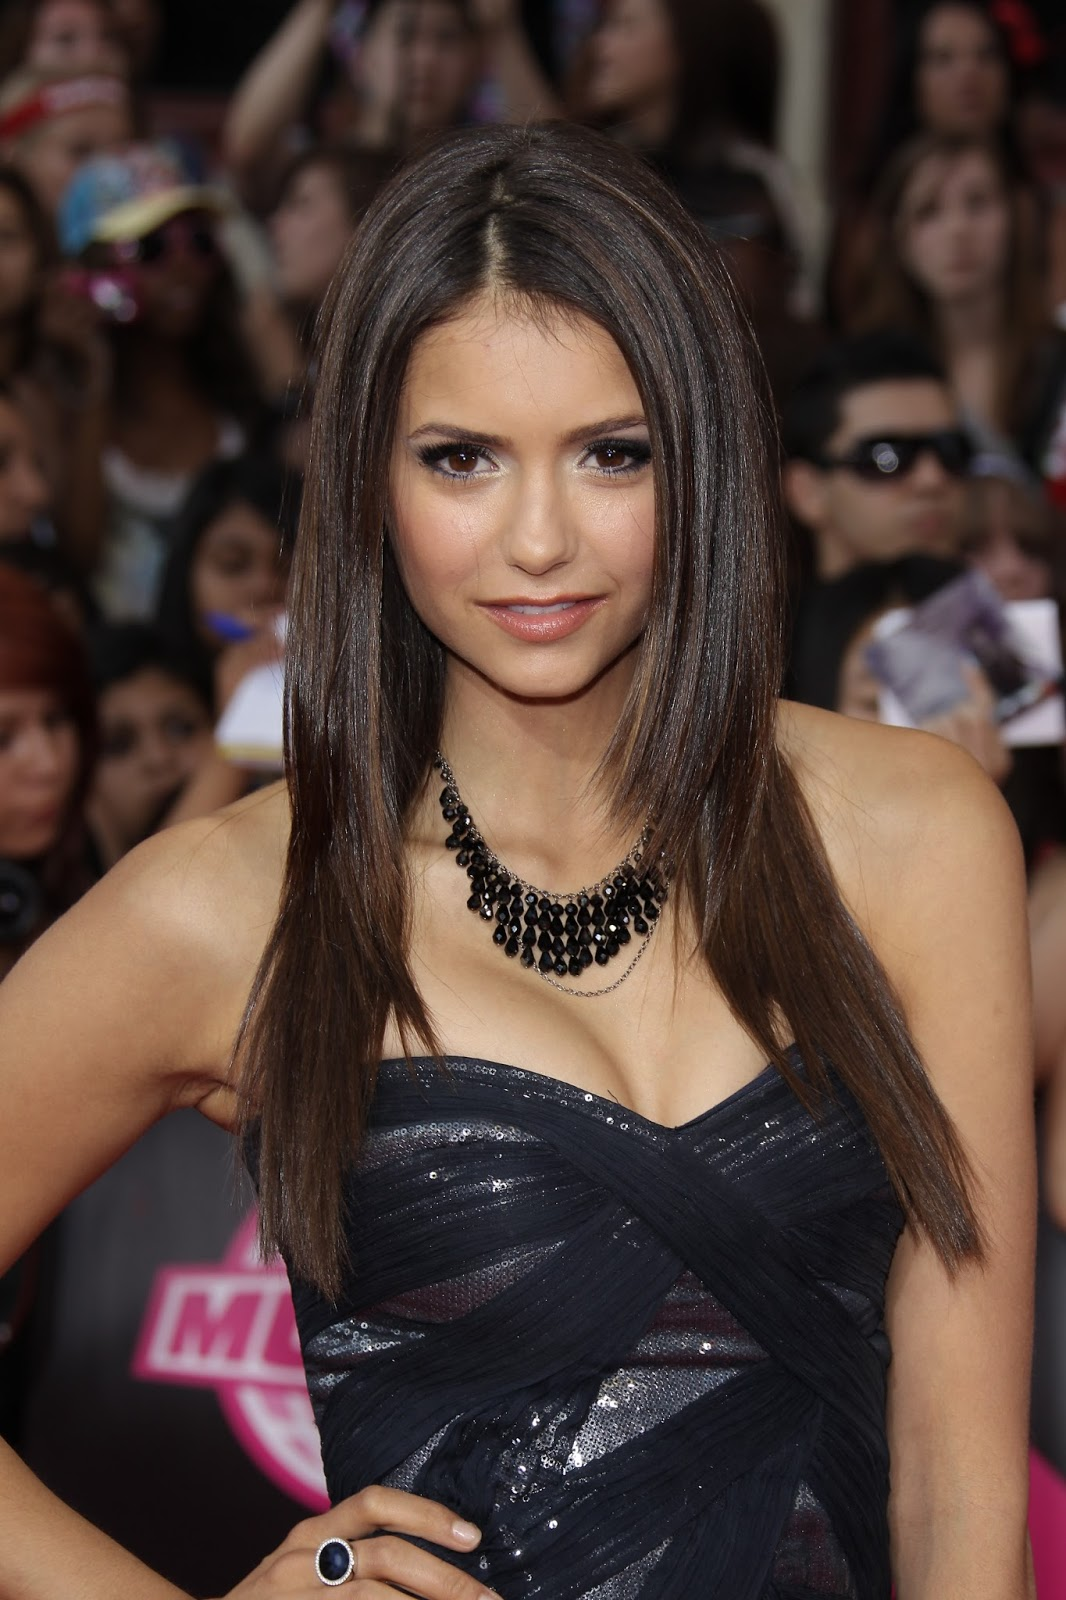 Image Galleries For Lionaid Campaigns: We Love Women: Nina Dobrev